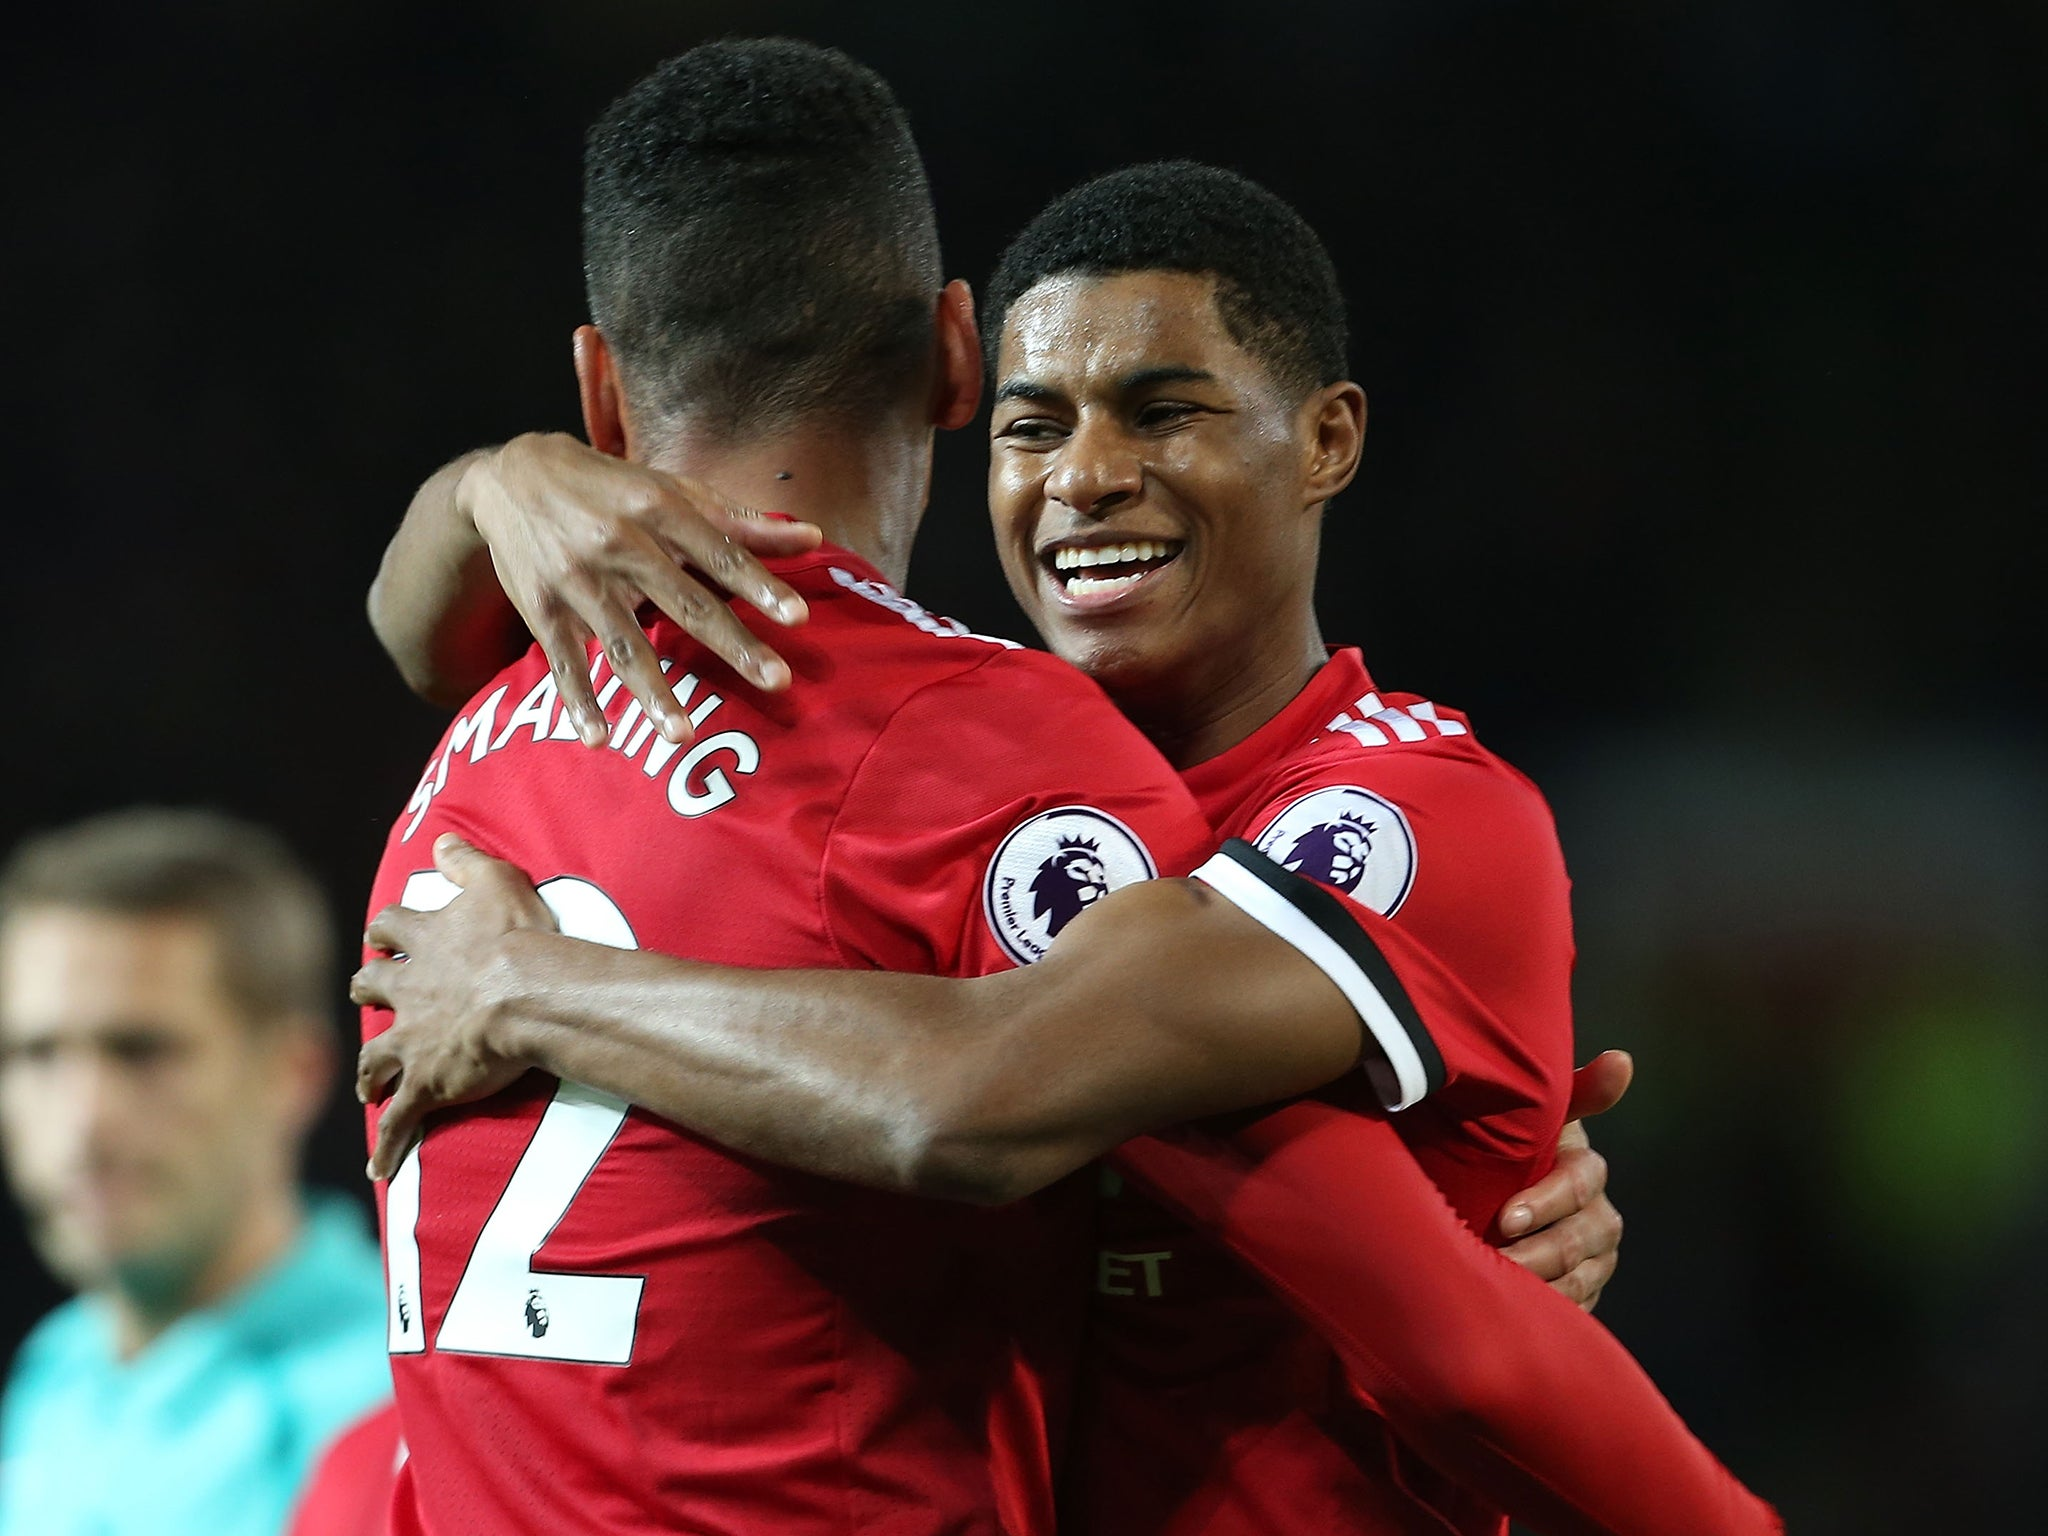 Marcus Rashford Reveals Unlikely Manchester United Inspiration As A Child Was Goalkeeper Tim Howard The Independent The Independent